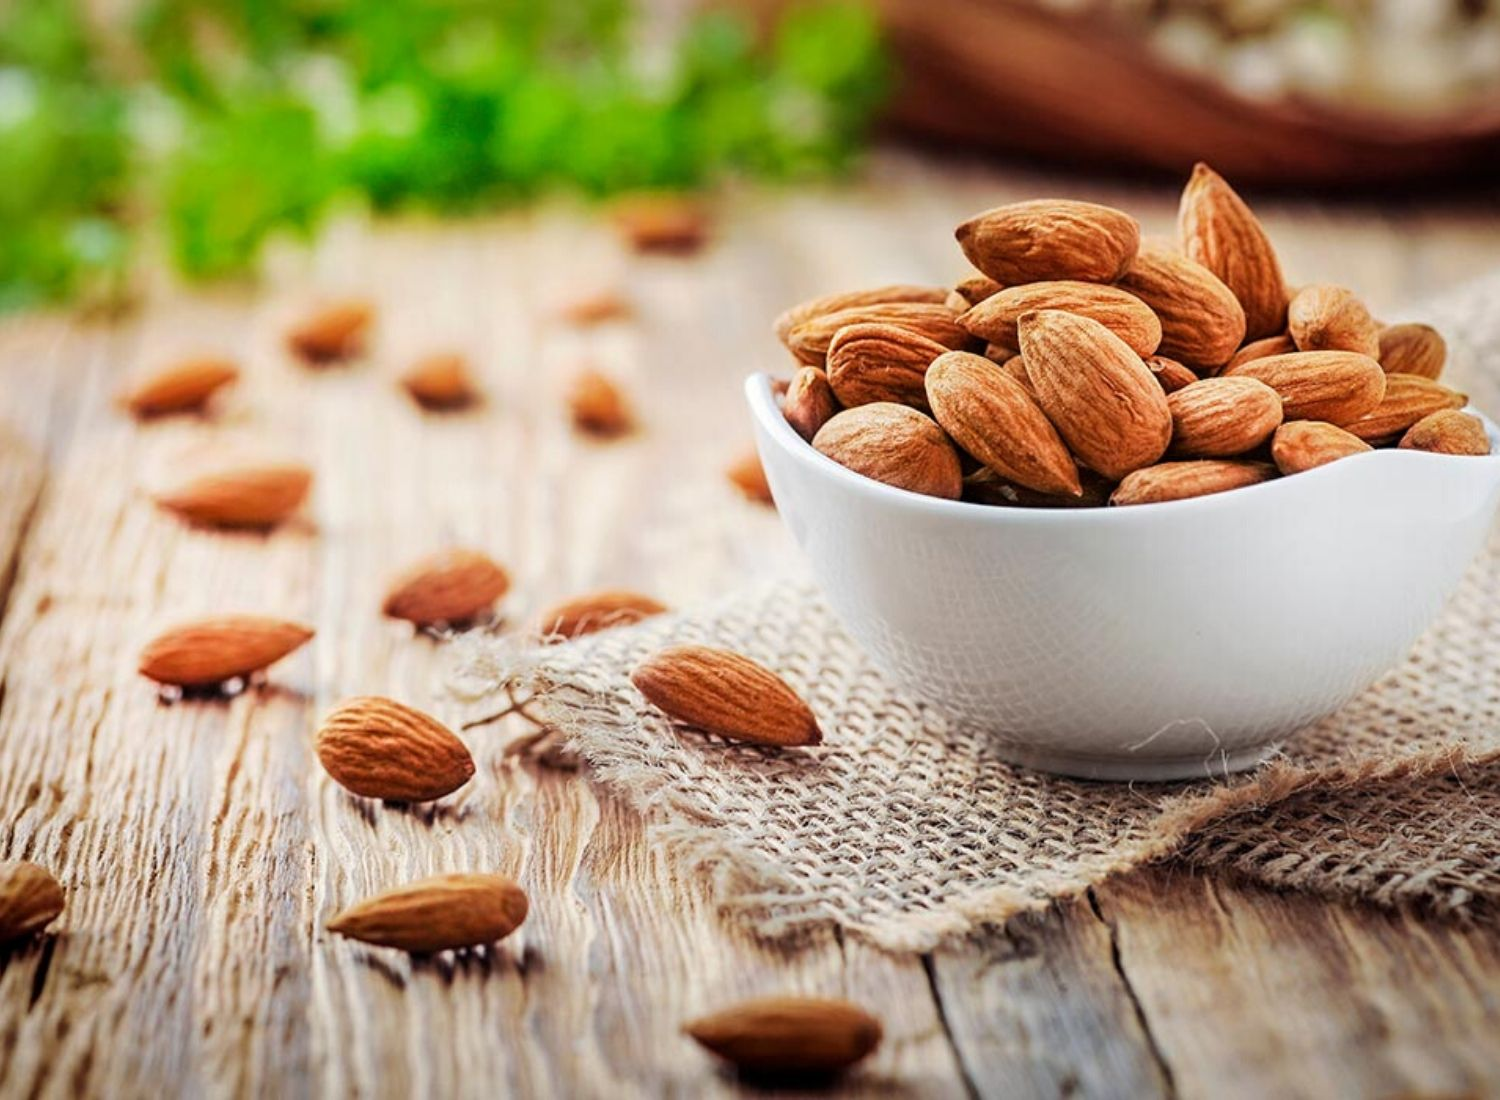 4 Benefits of Almonds For Your Health